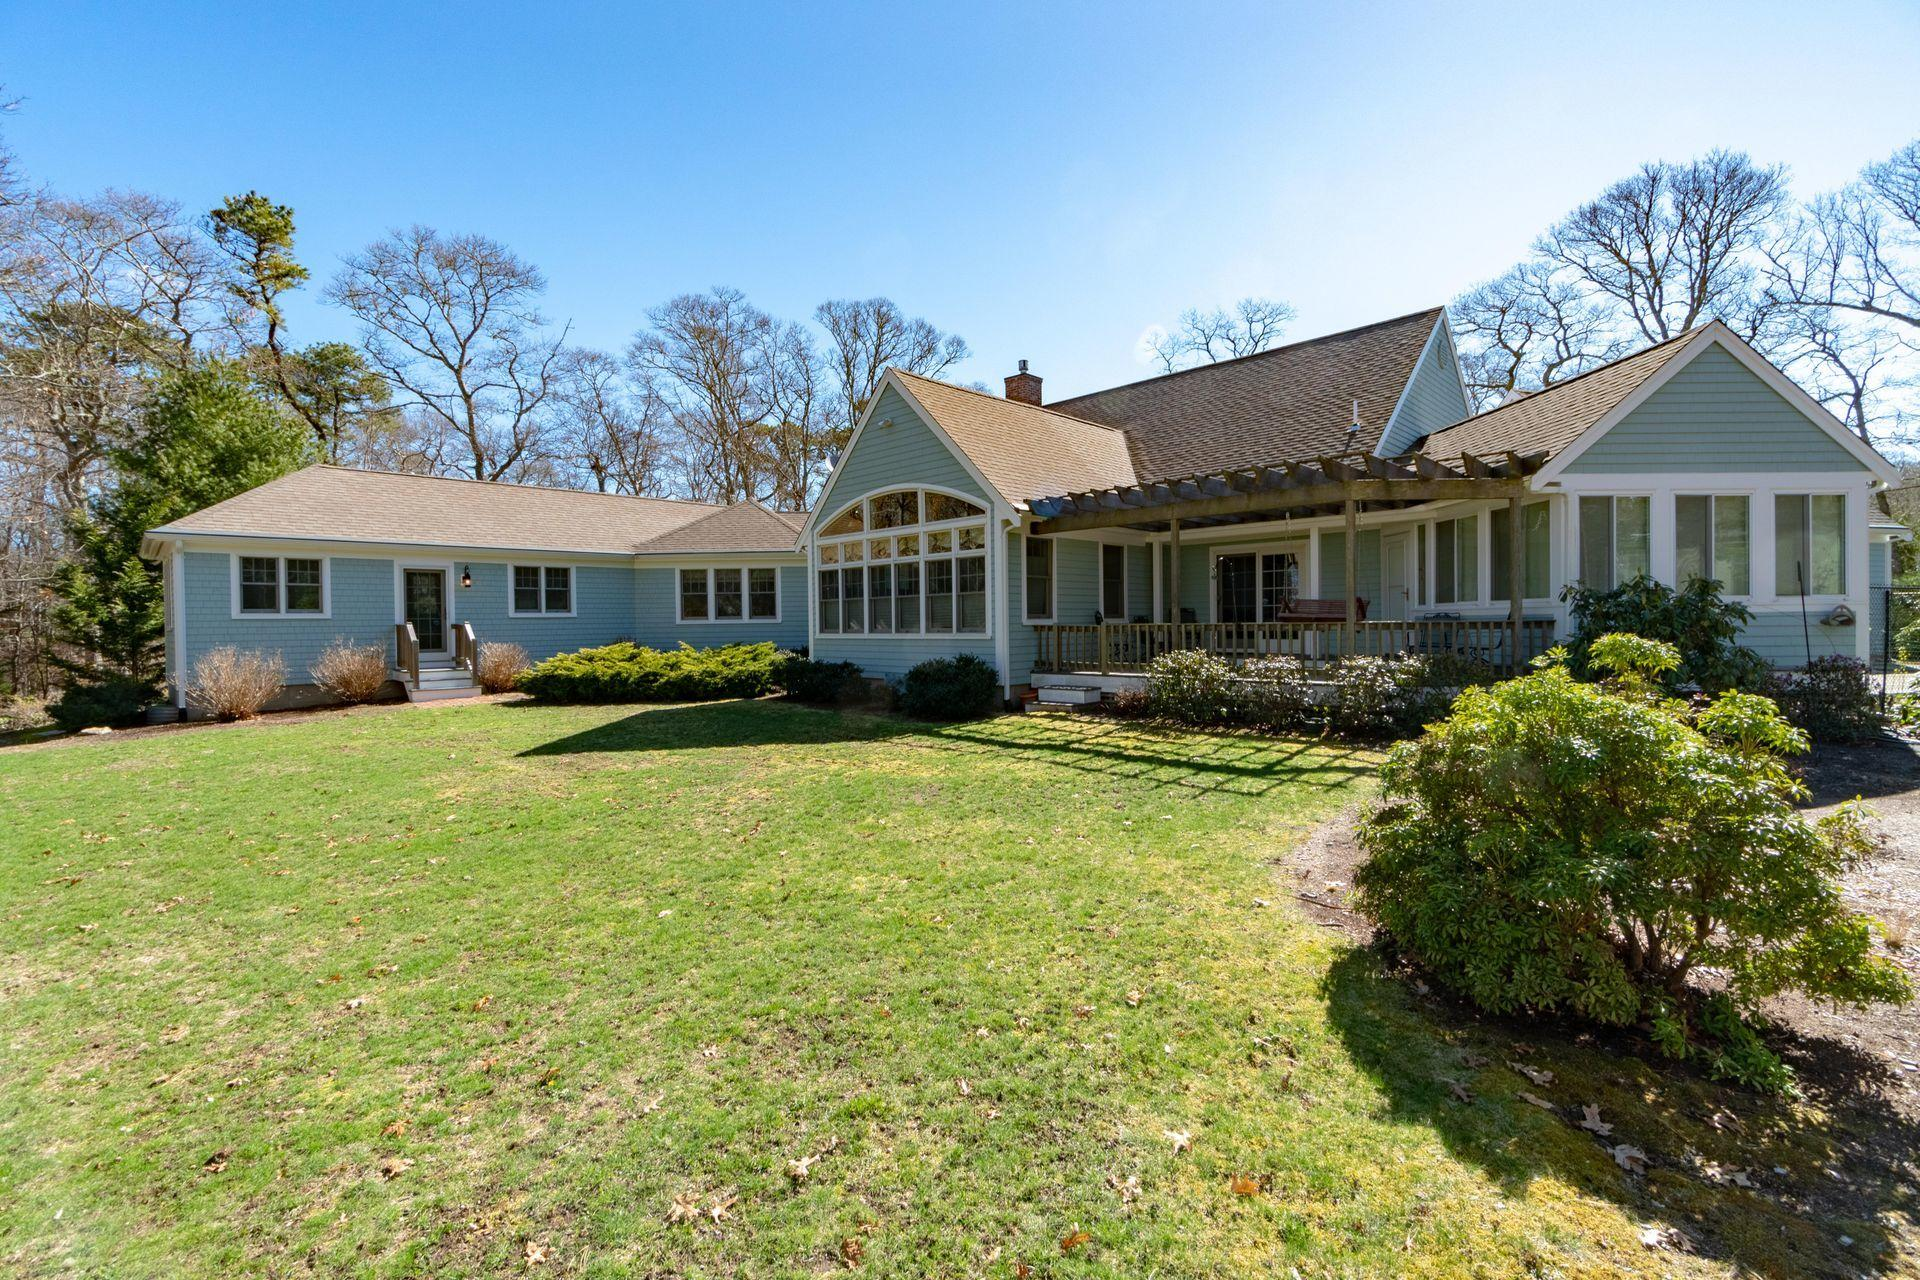 144 tonset road orleans ma 02653 property image 2